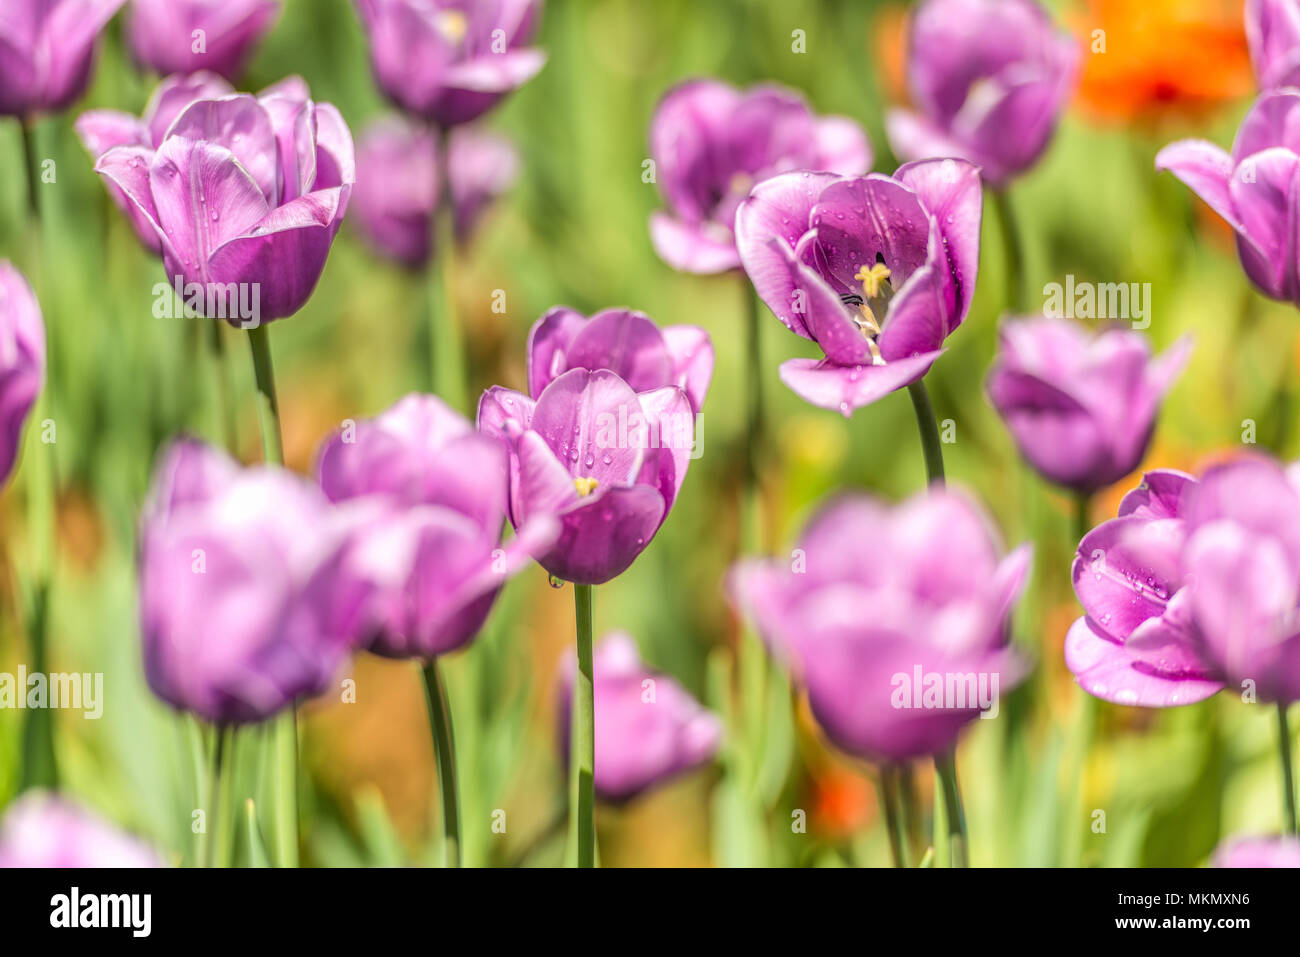 Lilac tulips in the botanical garden. - Stock Image